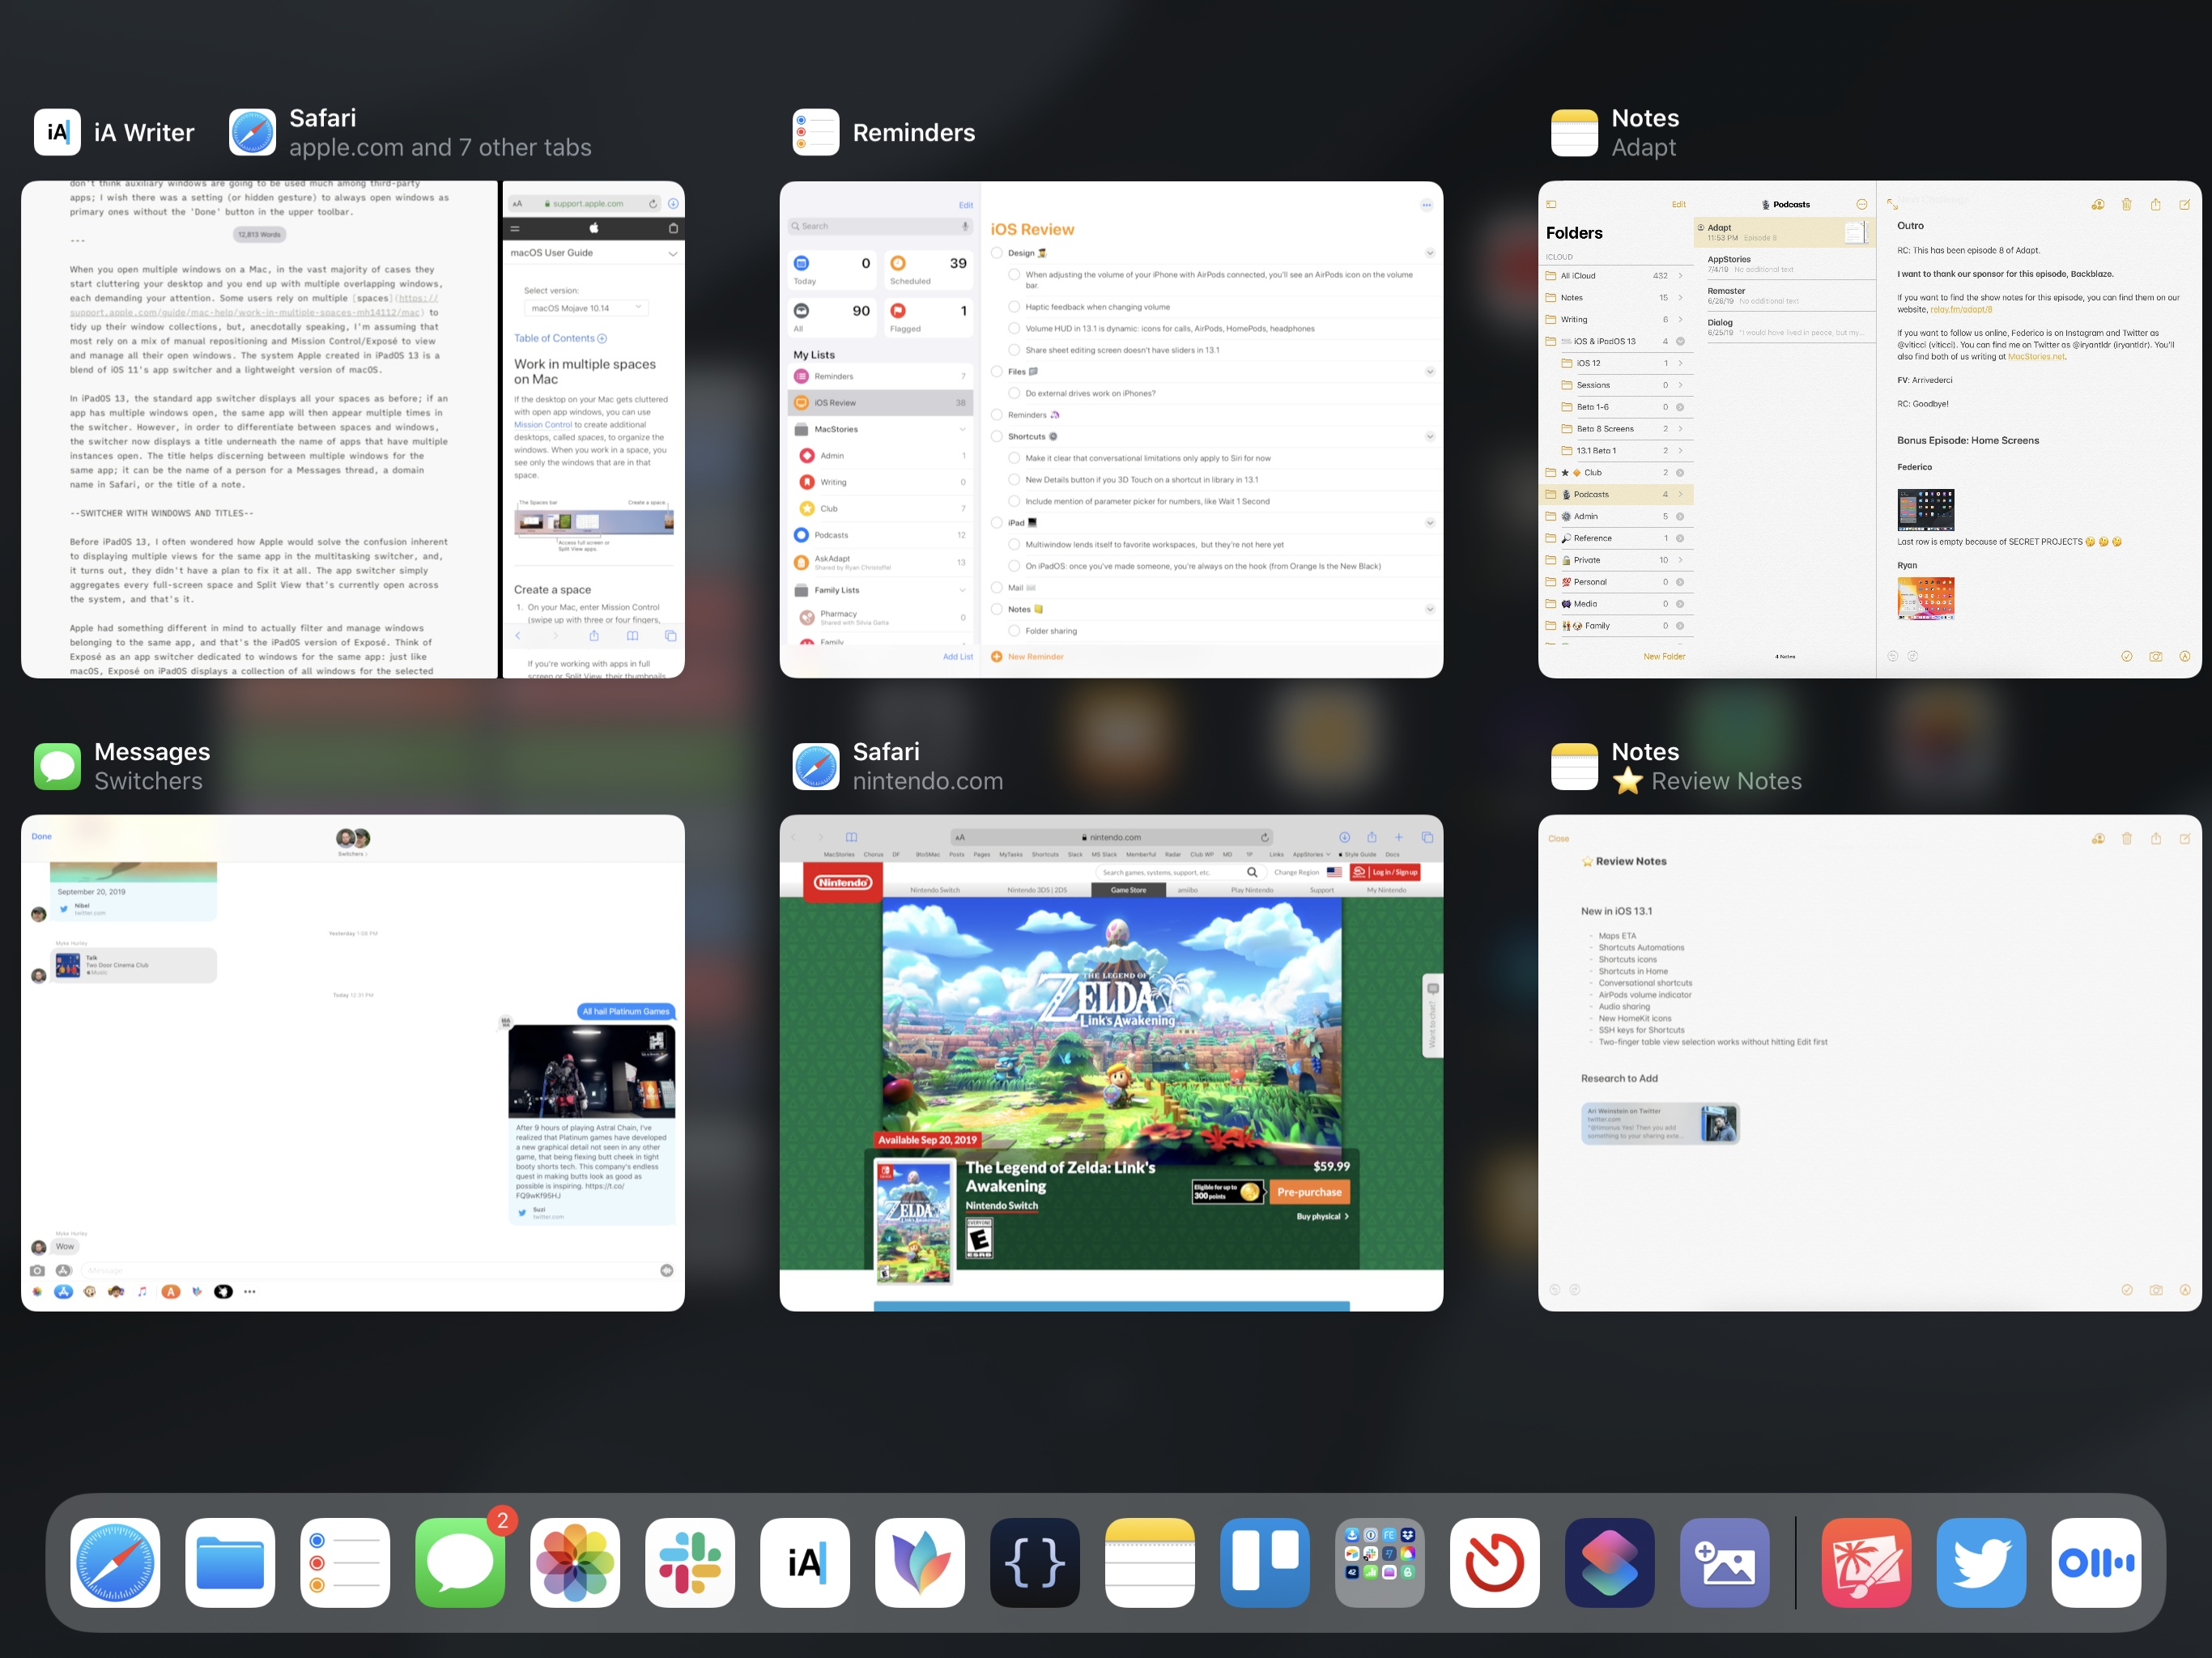 Apps with multiple windows in the app switcher.